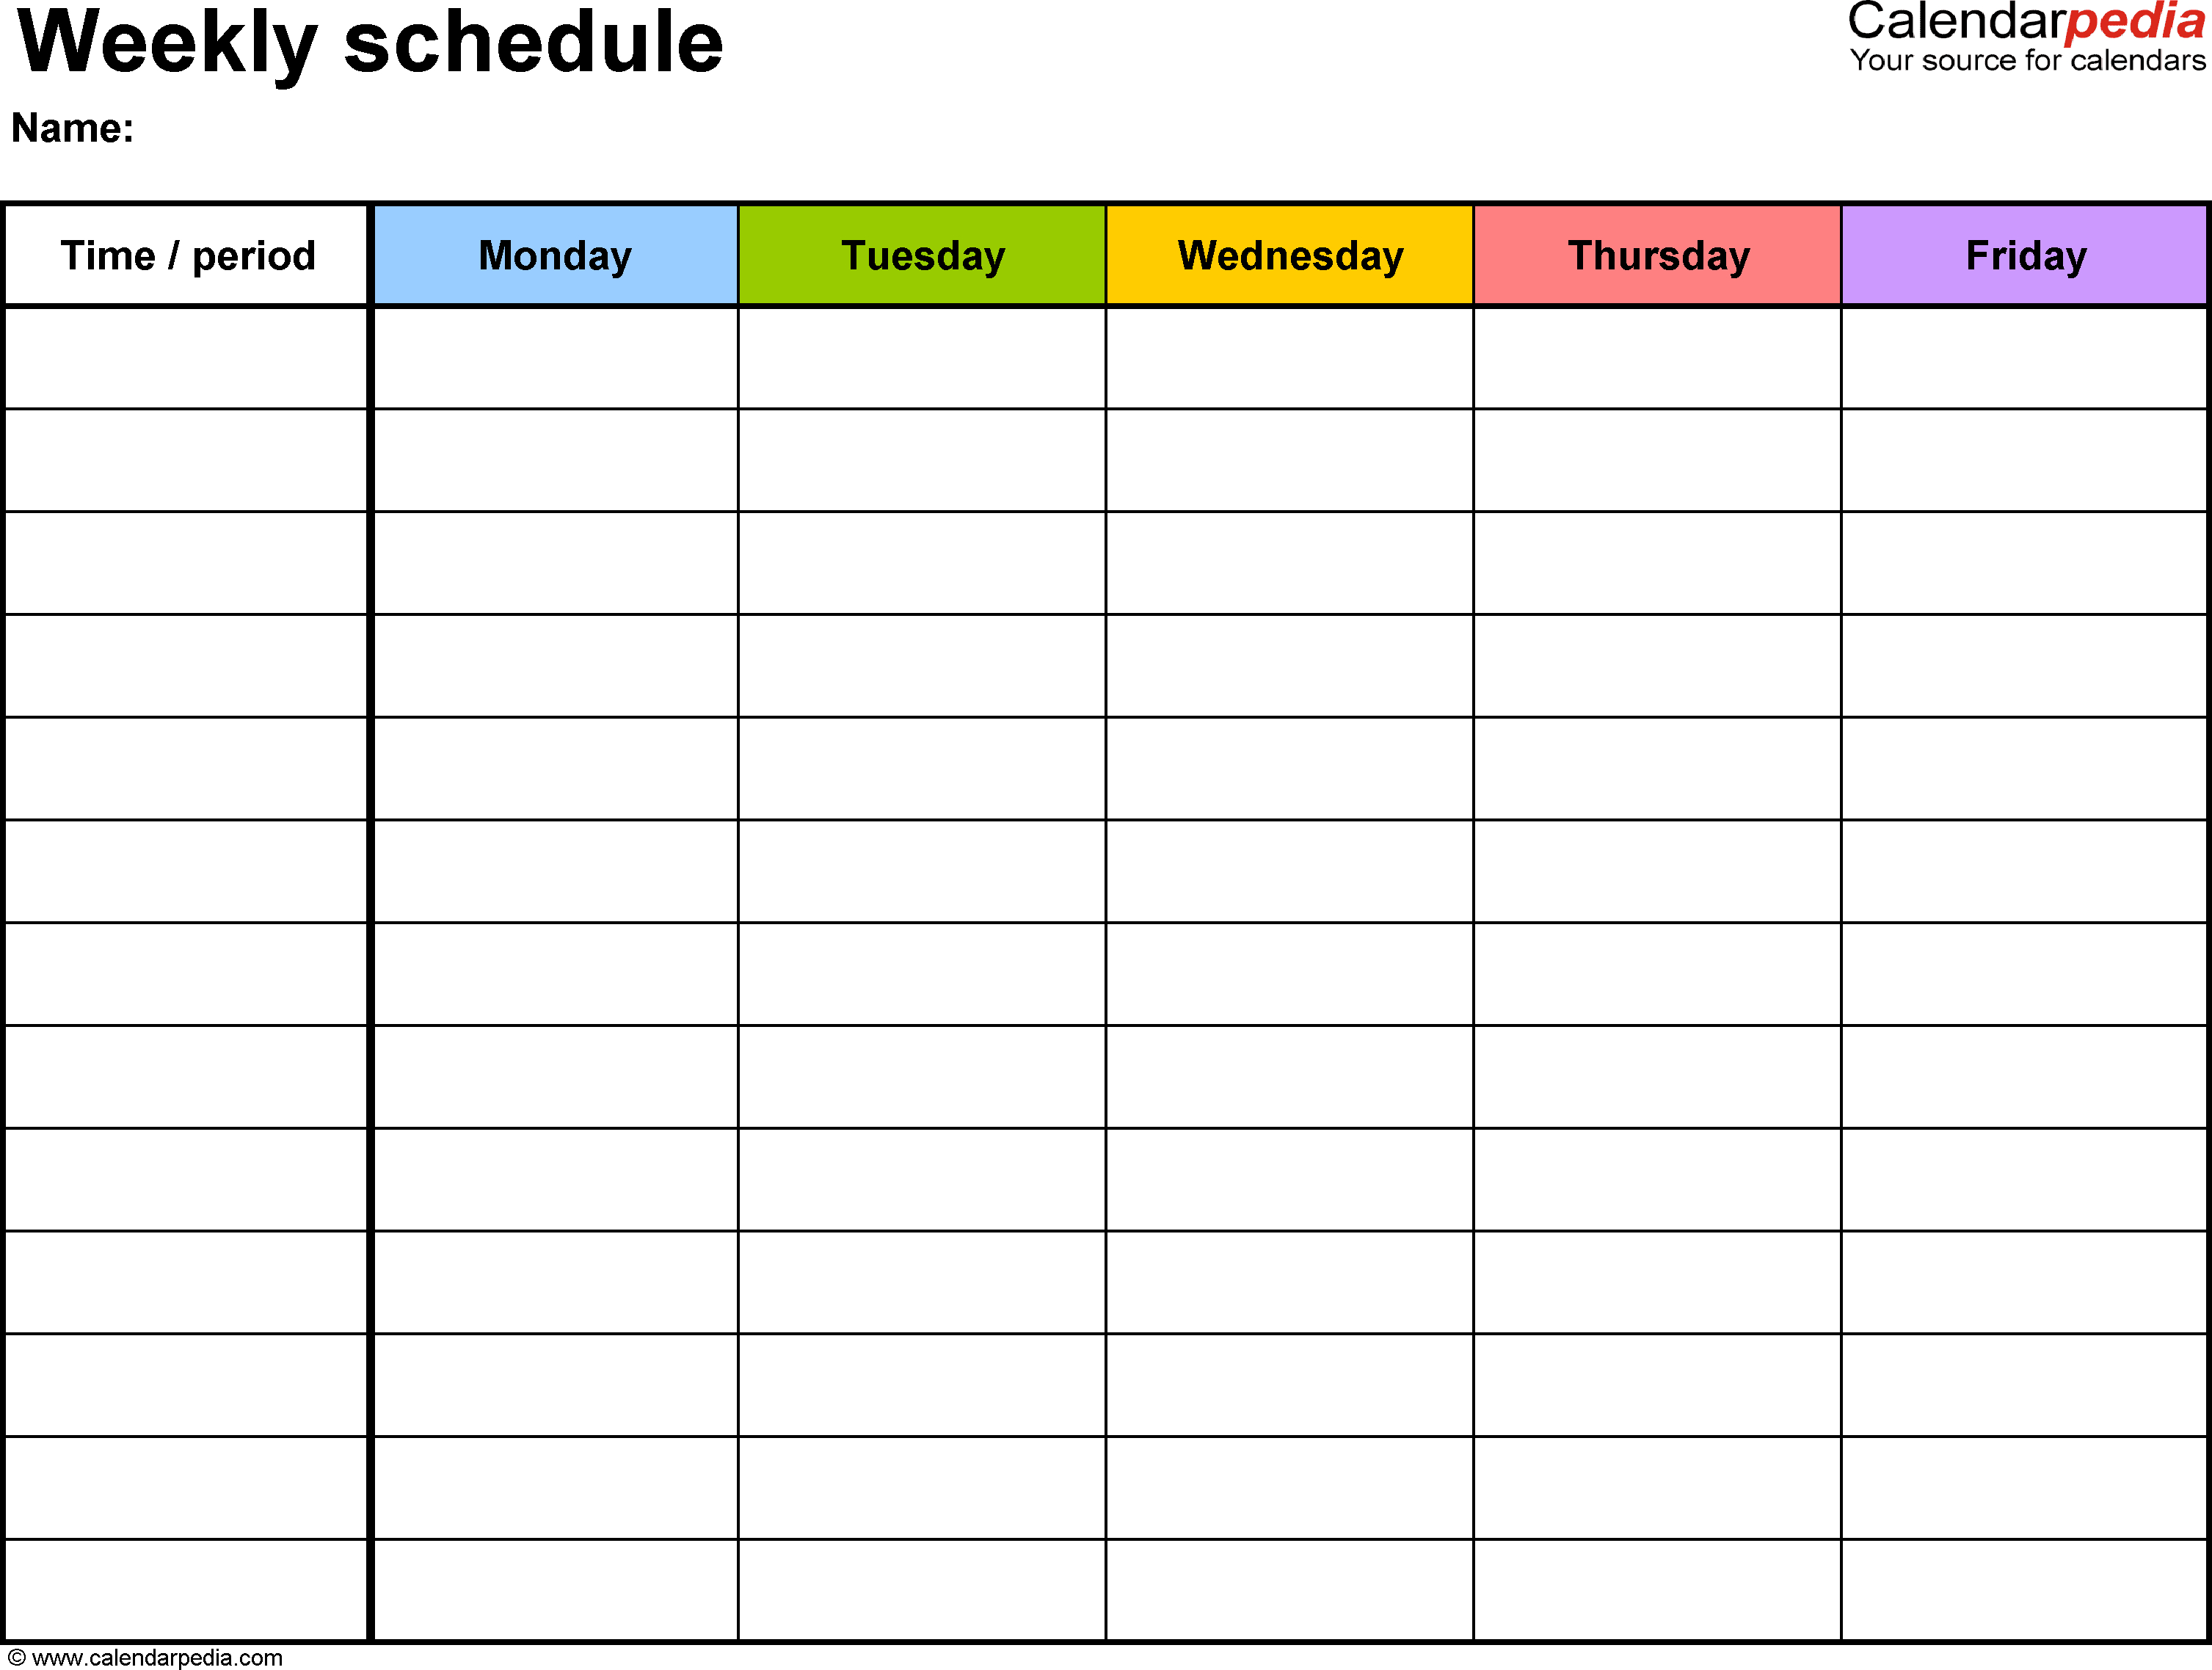 Weekly Schedule Template For Word Version 1: Landscape, 1 inside Monday Through Friday Blank Calendar